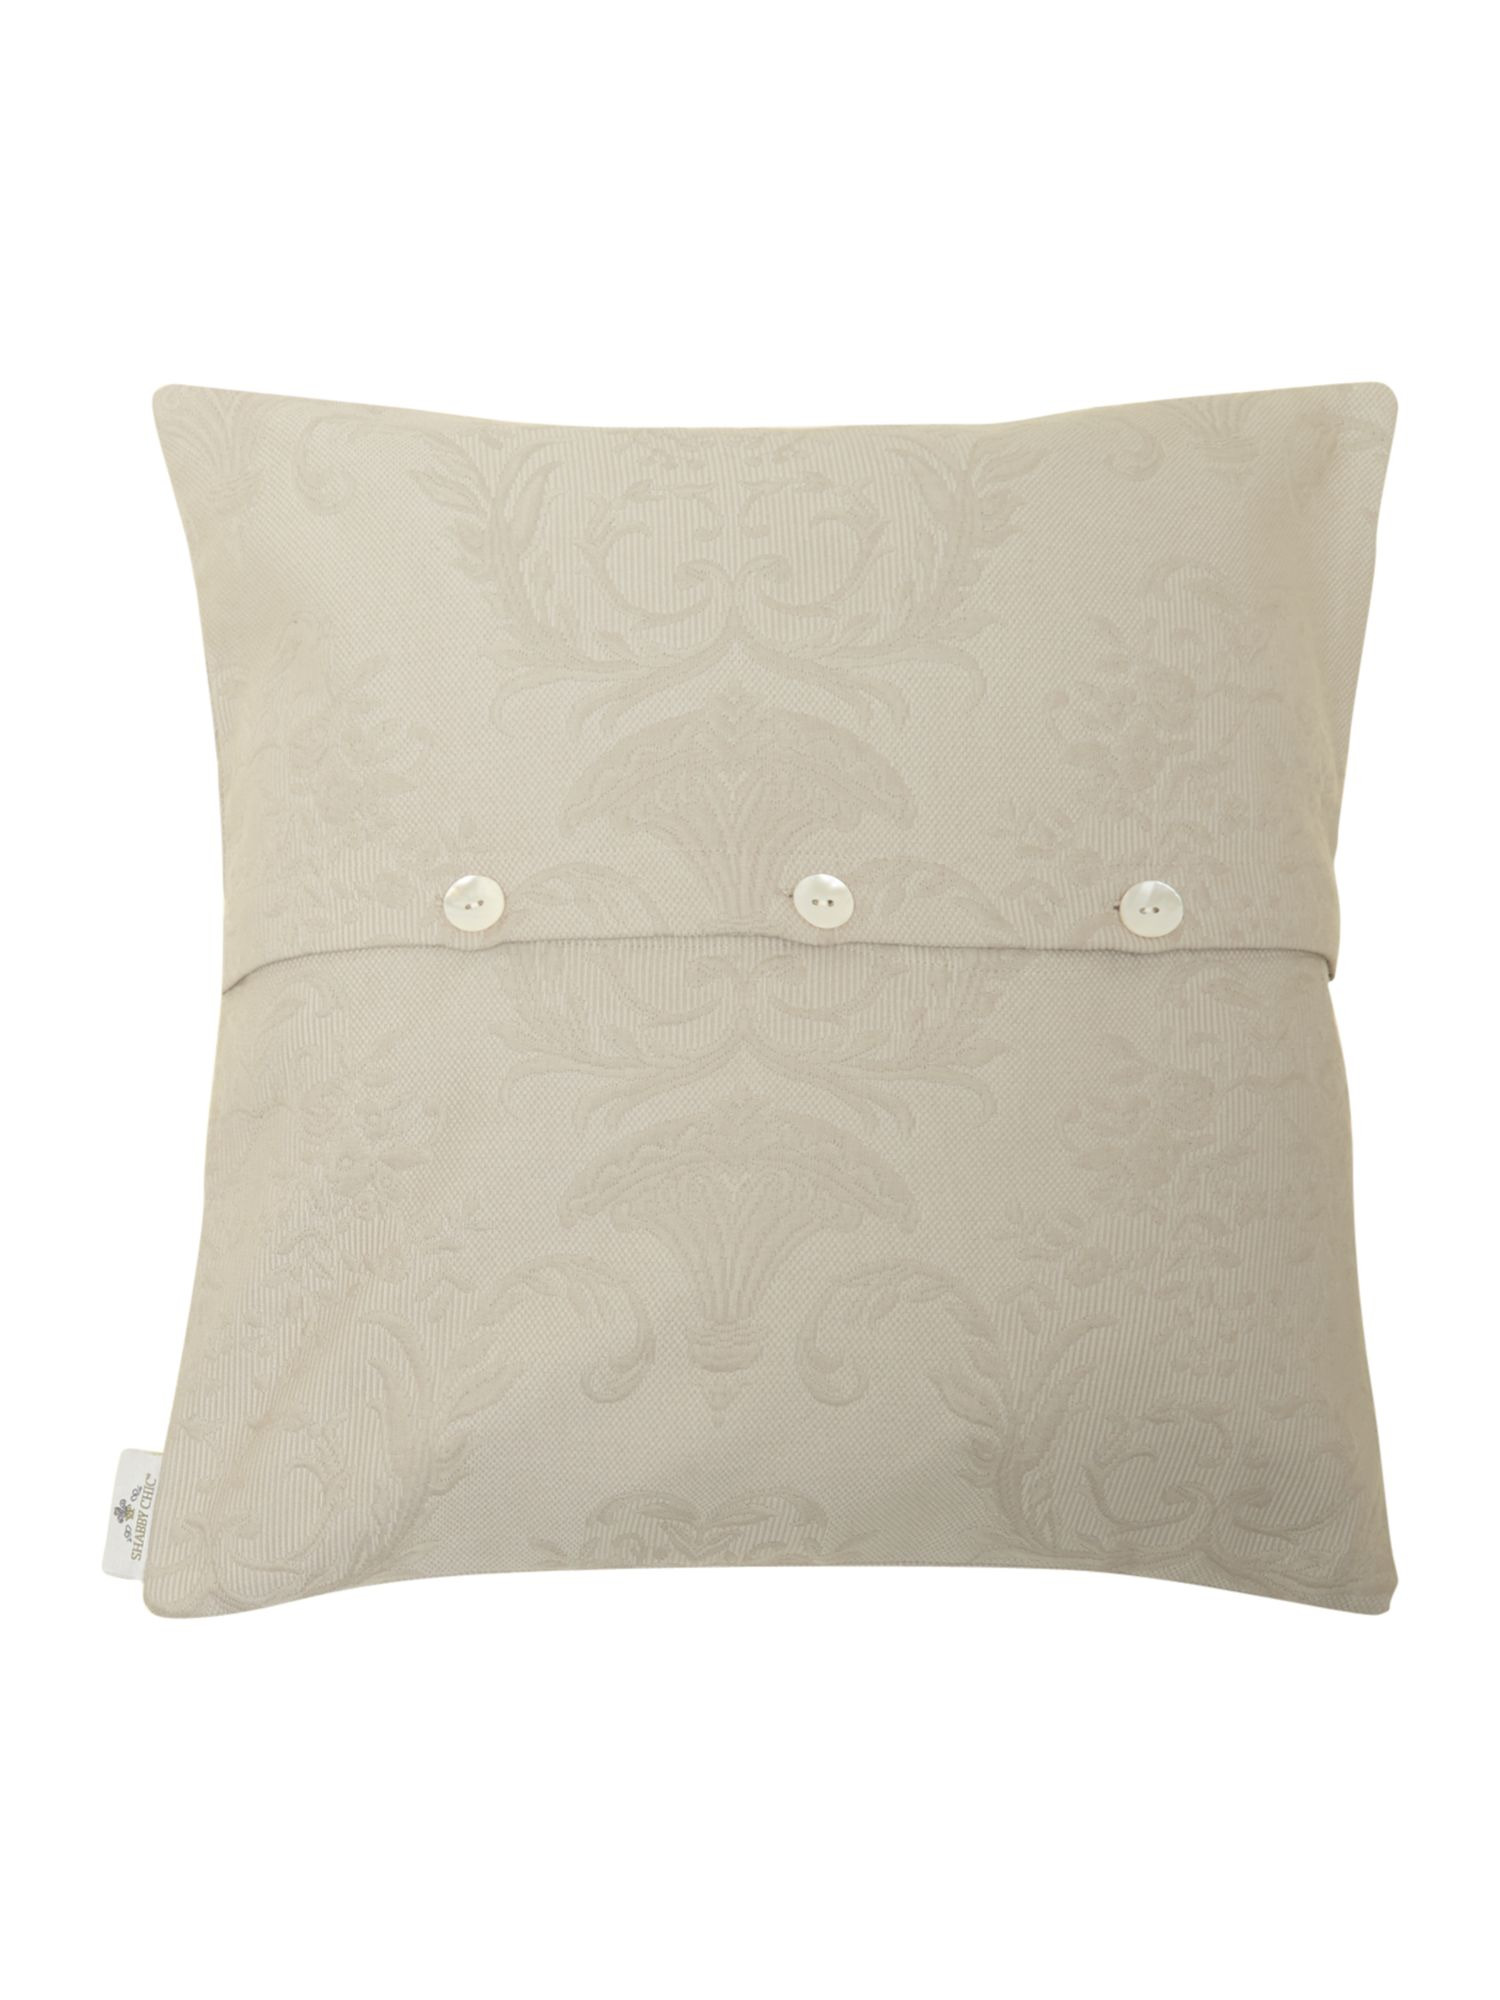 Grey Matelasse cushion